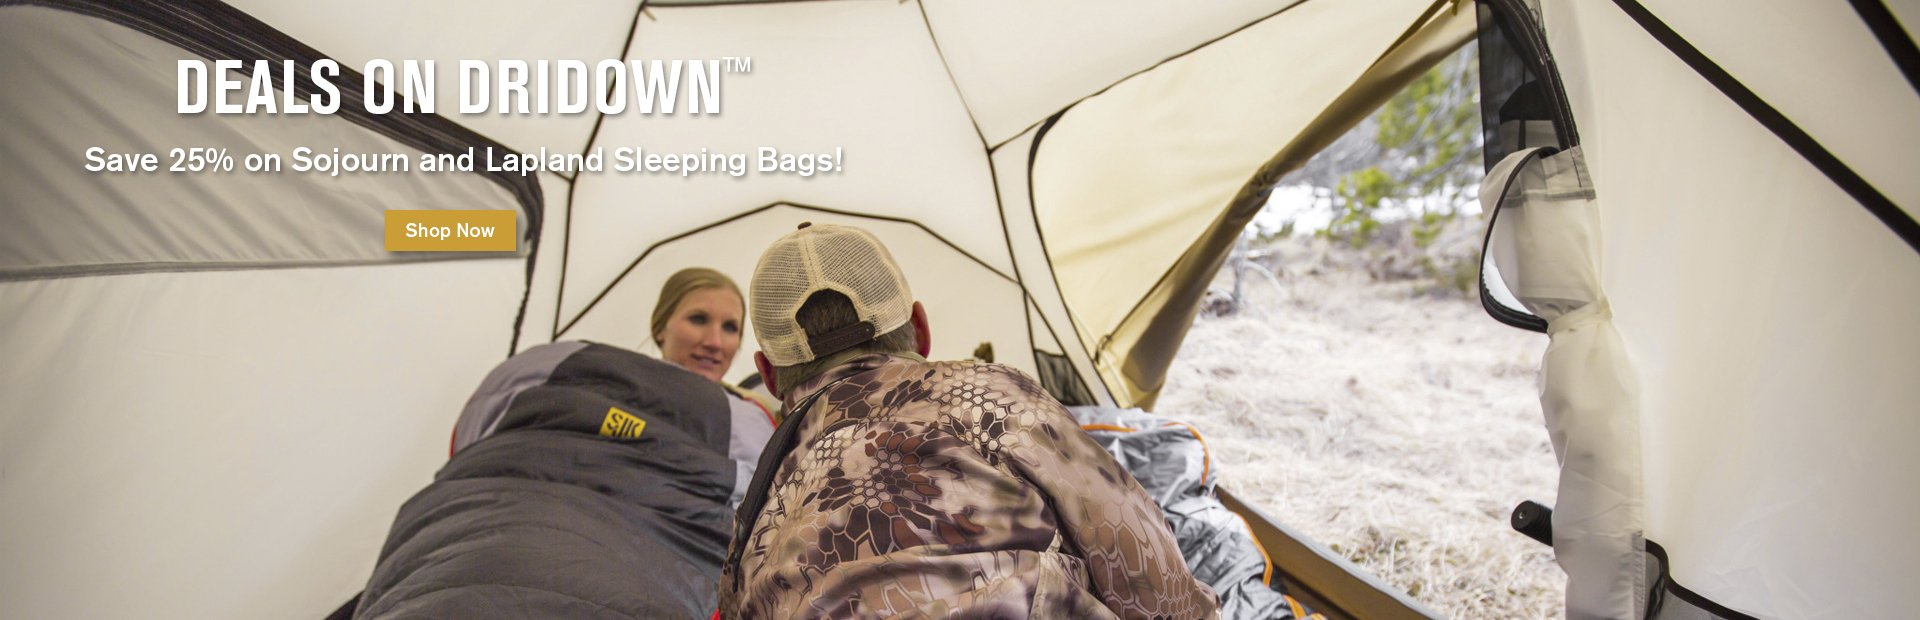 Save 25% on Sojourn and Lapland Sleeping Bags!